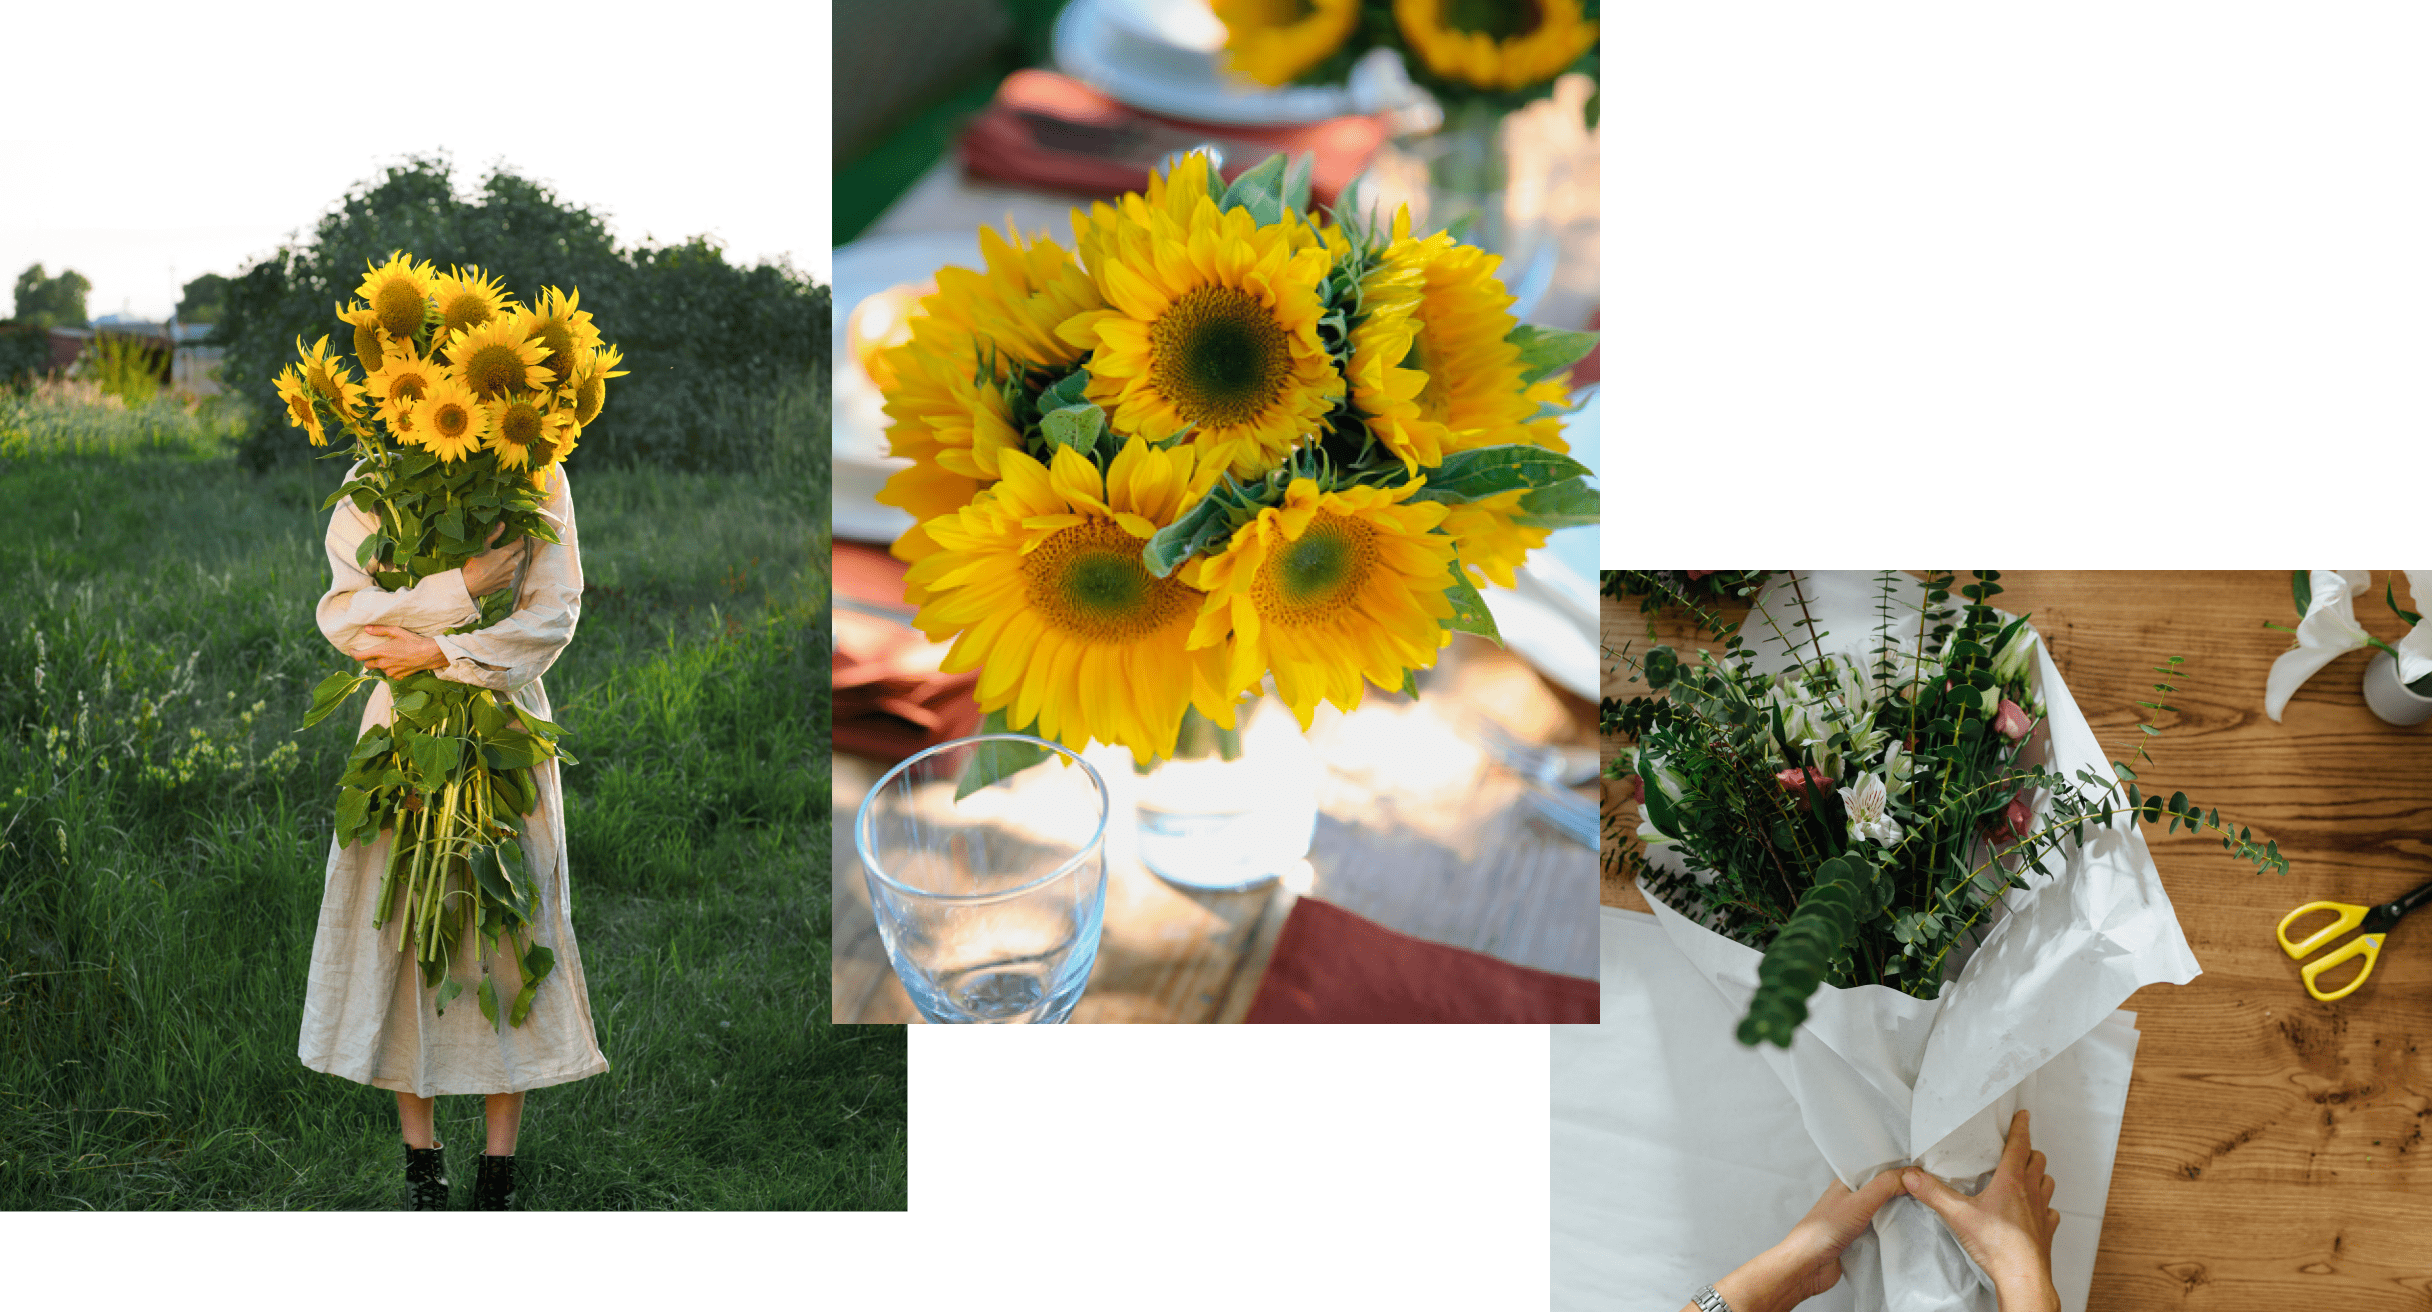 Three photos depicting arrangements of yellow flowers and green foliage